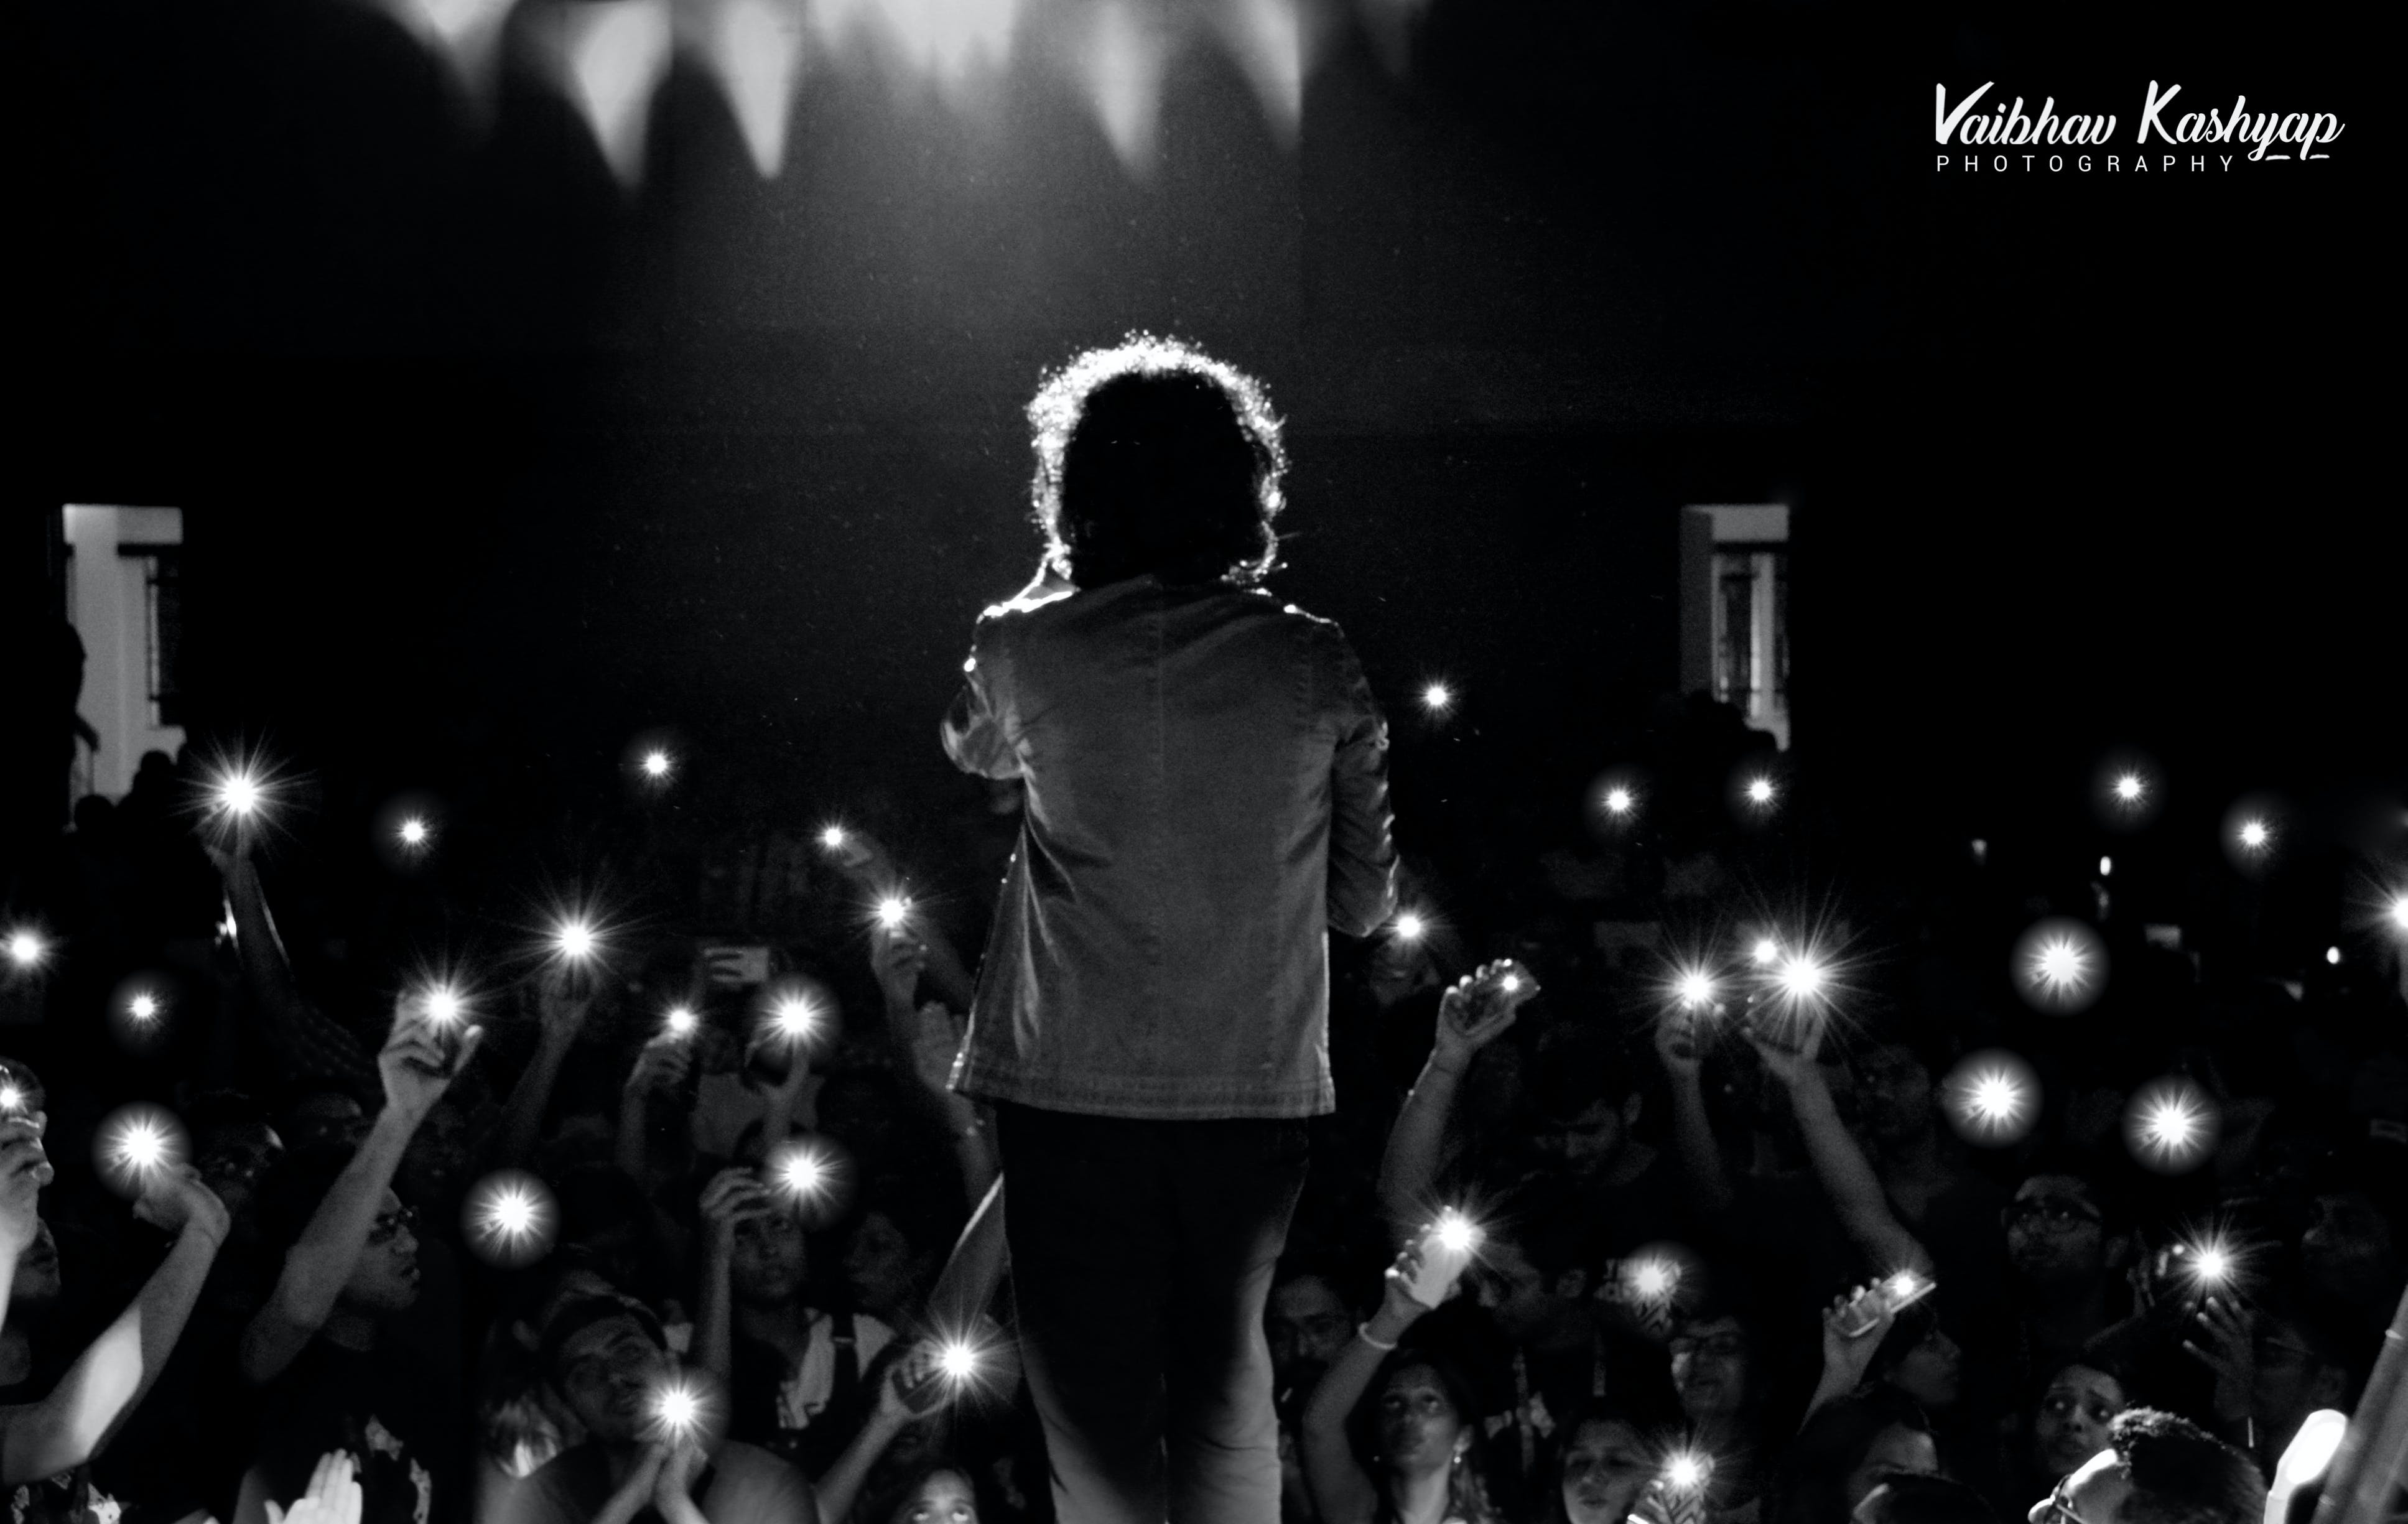 Free stock photo of #Singer #Flash #India #Concert #BackStage